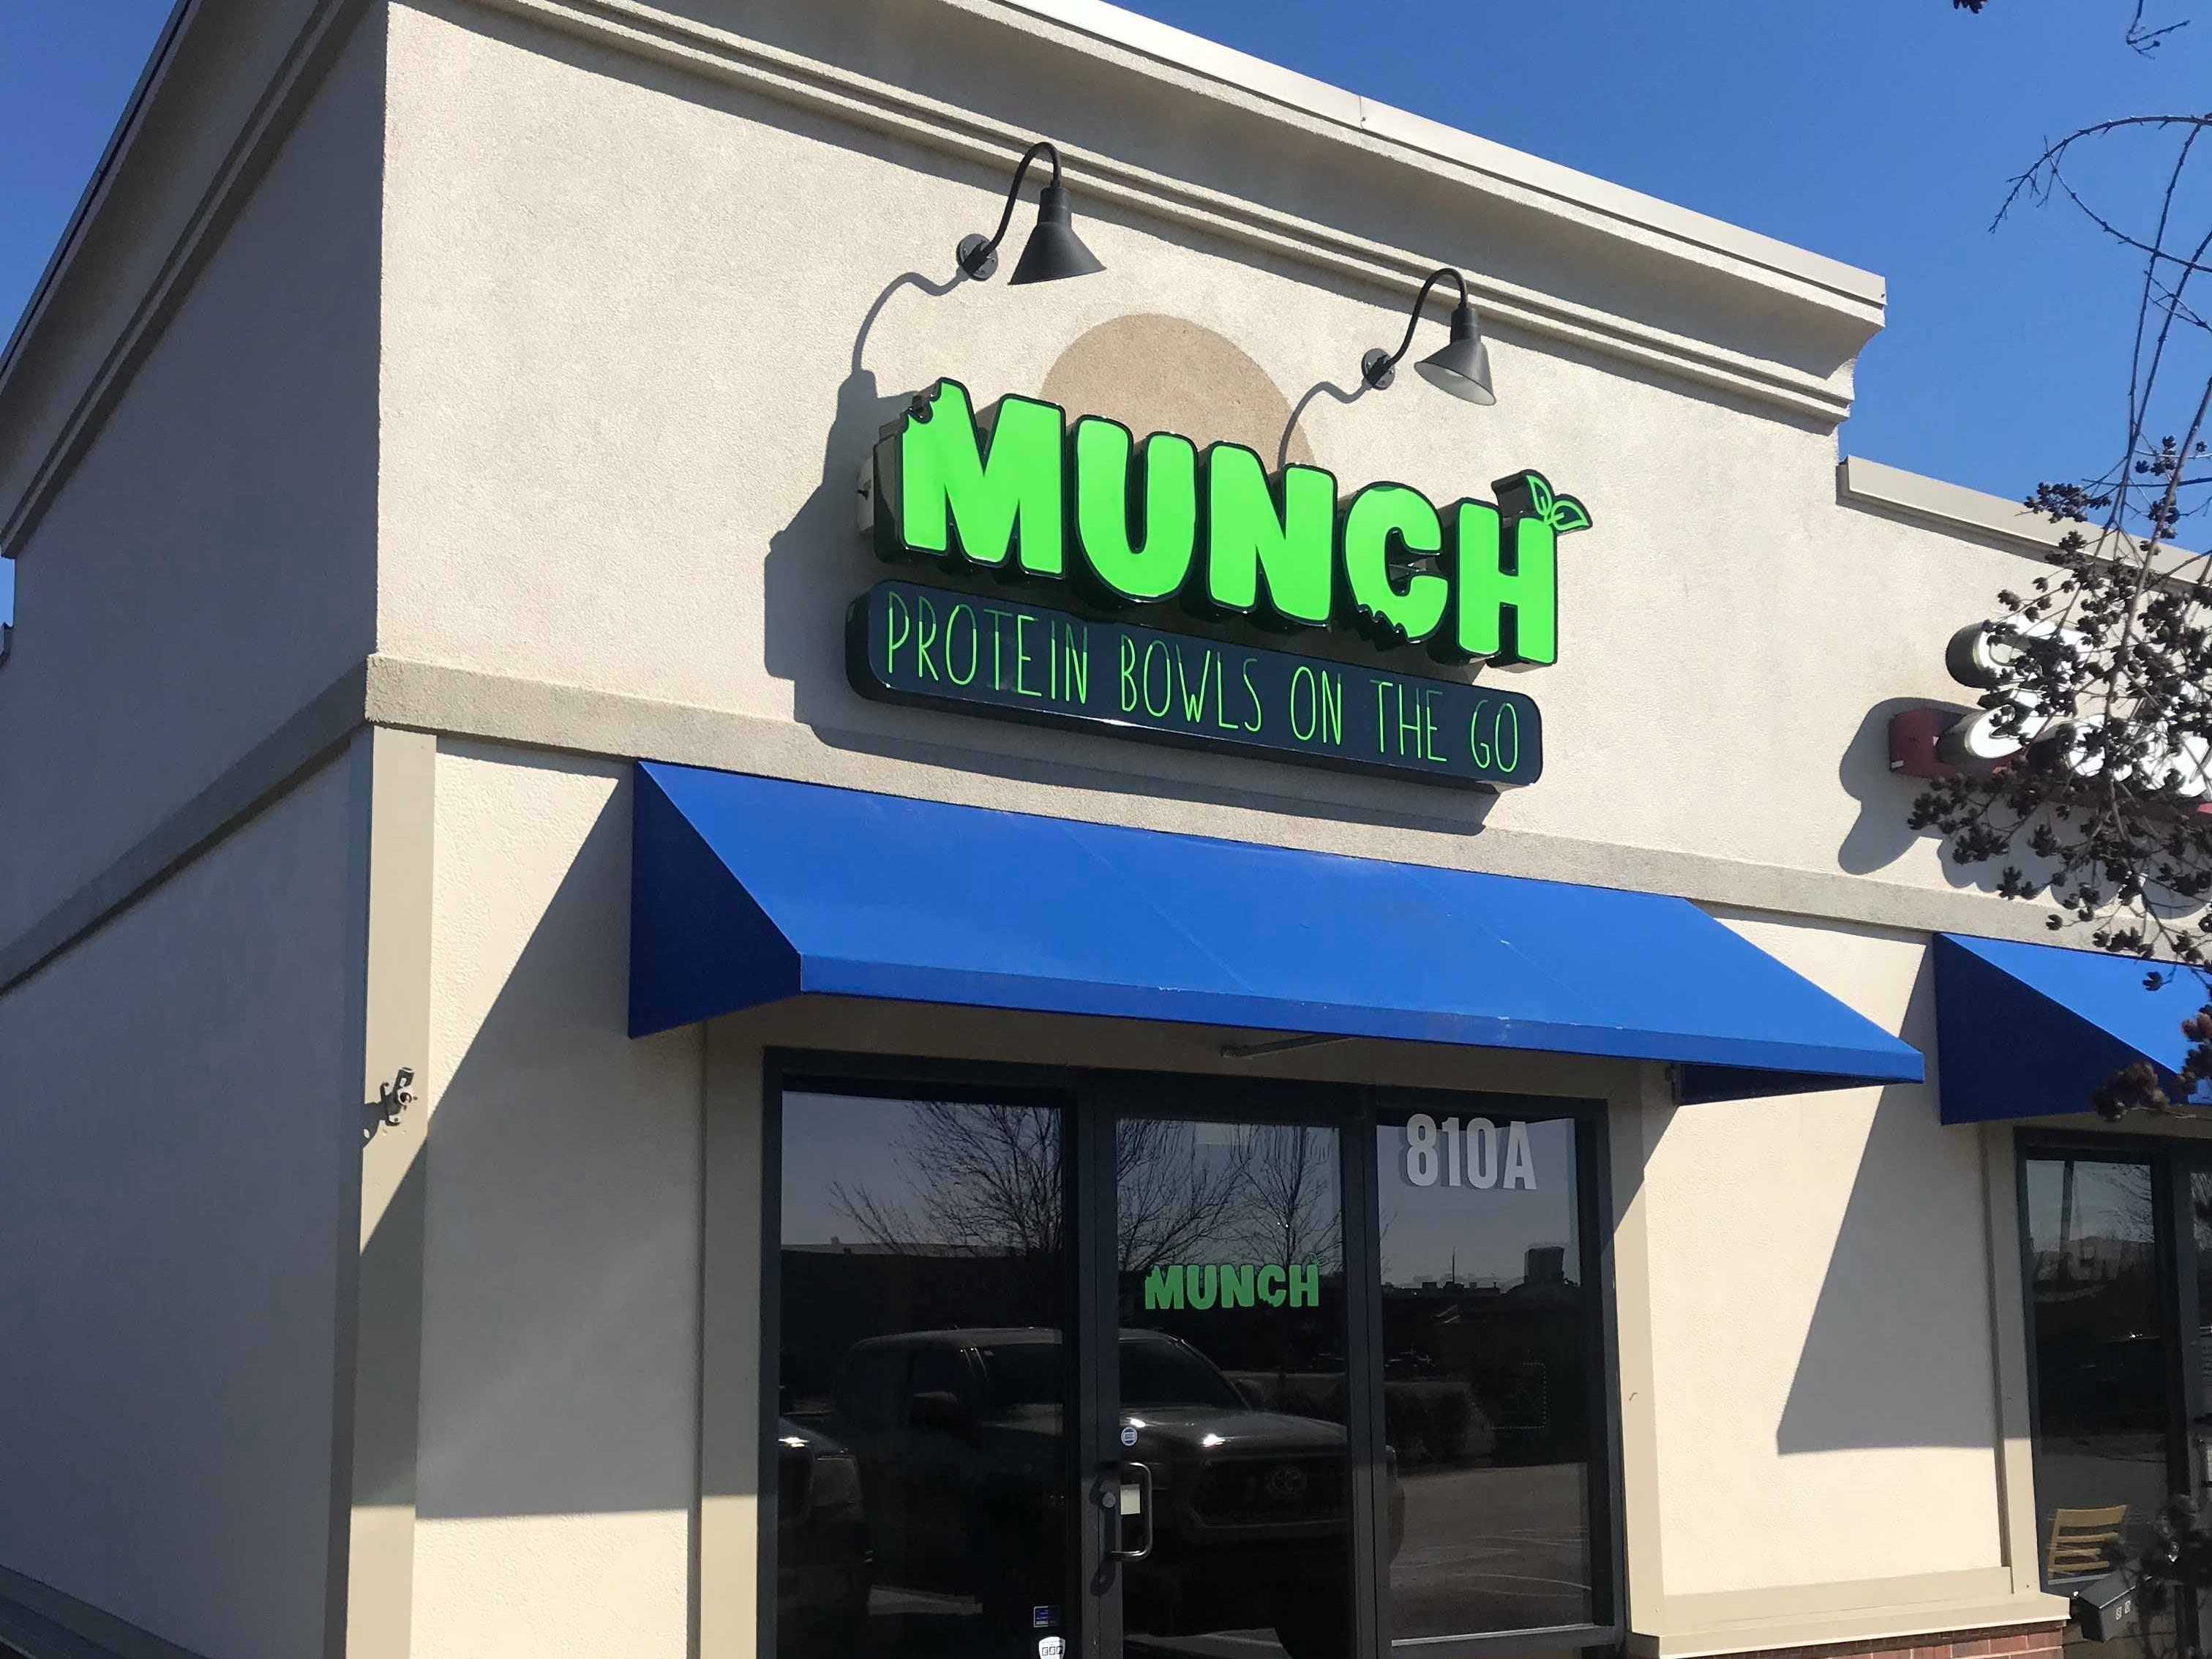 Munch Murfreesboro, which offers protein-packed healthy meals for an affordable price, is opening March 16 at 810A Medical Center Parkway.